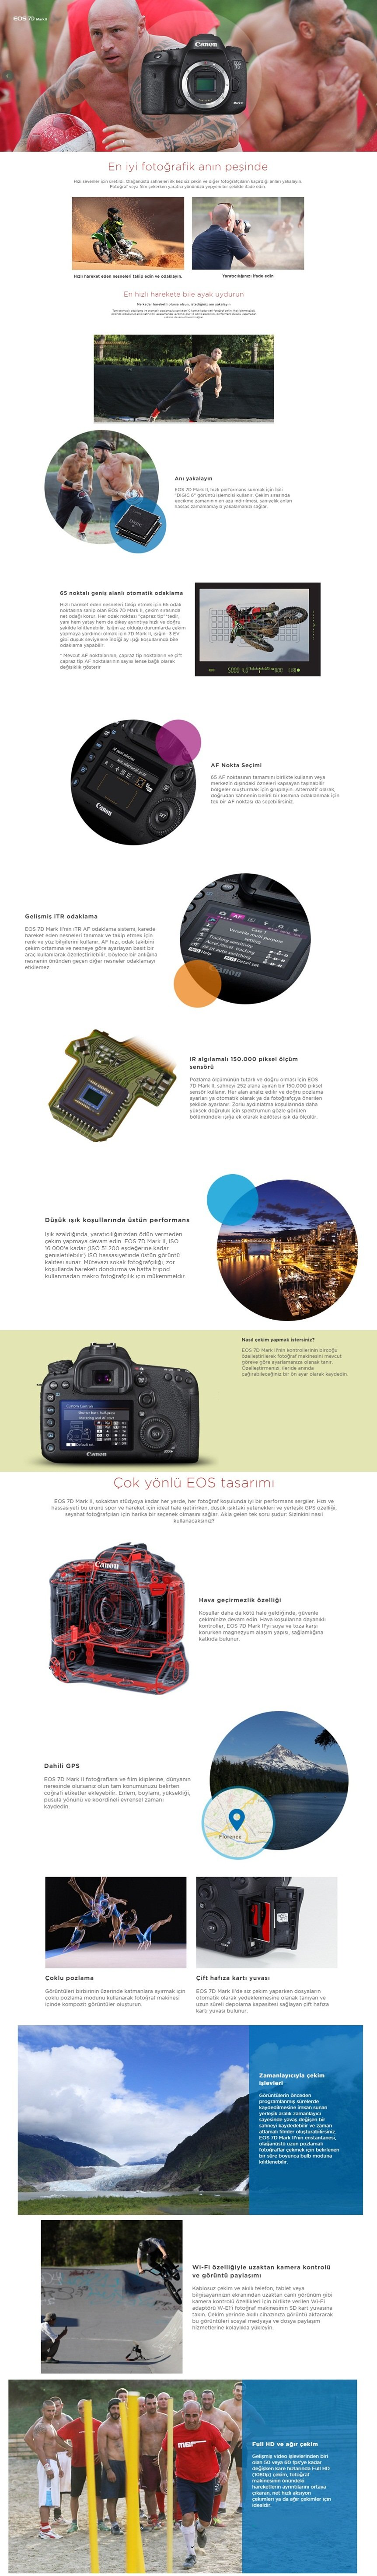 Canon Eos 7d Mark Ii 18 135 Is Stm Kit W E1 Wi Fi Adaptr Fiyat 135mm Nano Usm With Wifi Adapter An Error Occurred